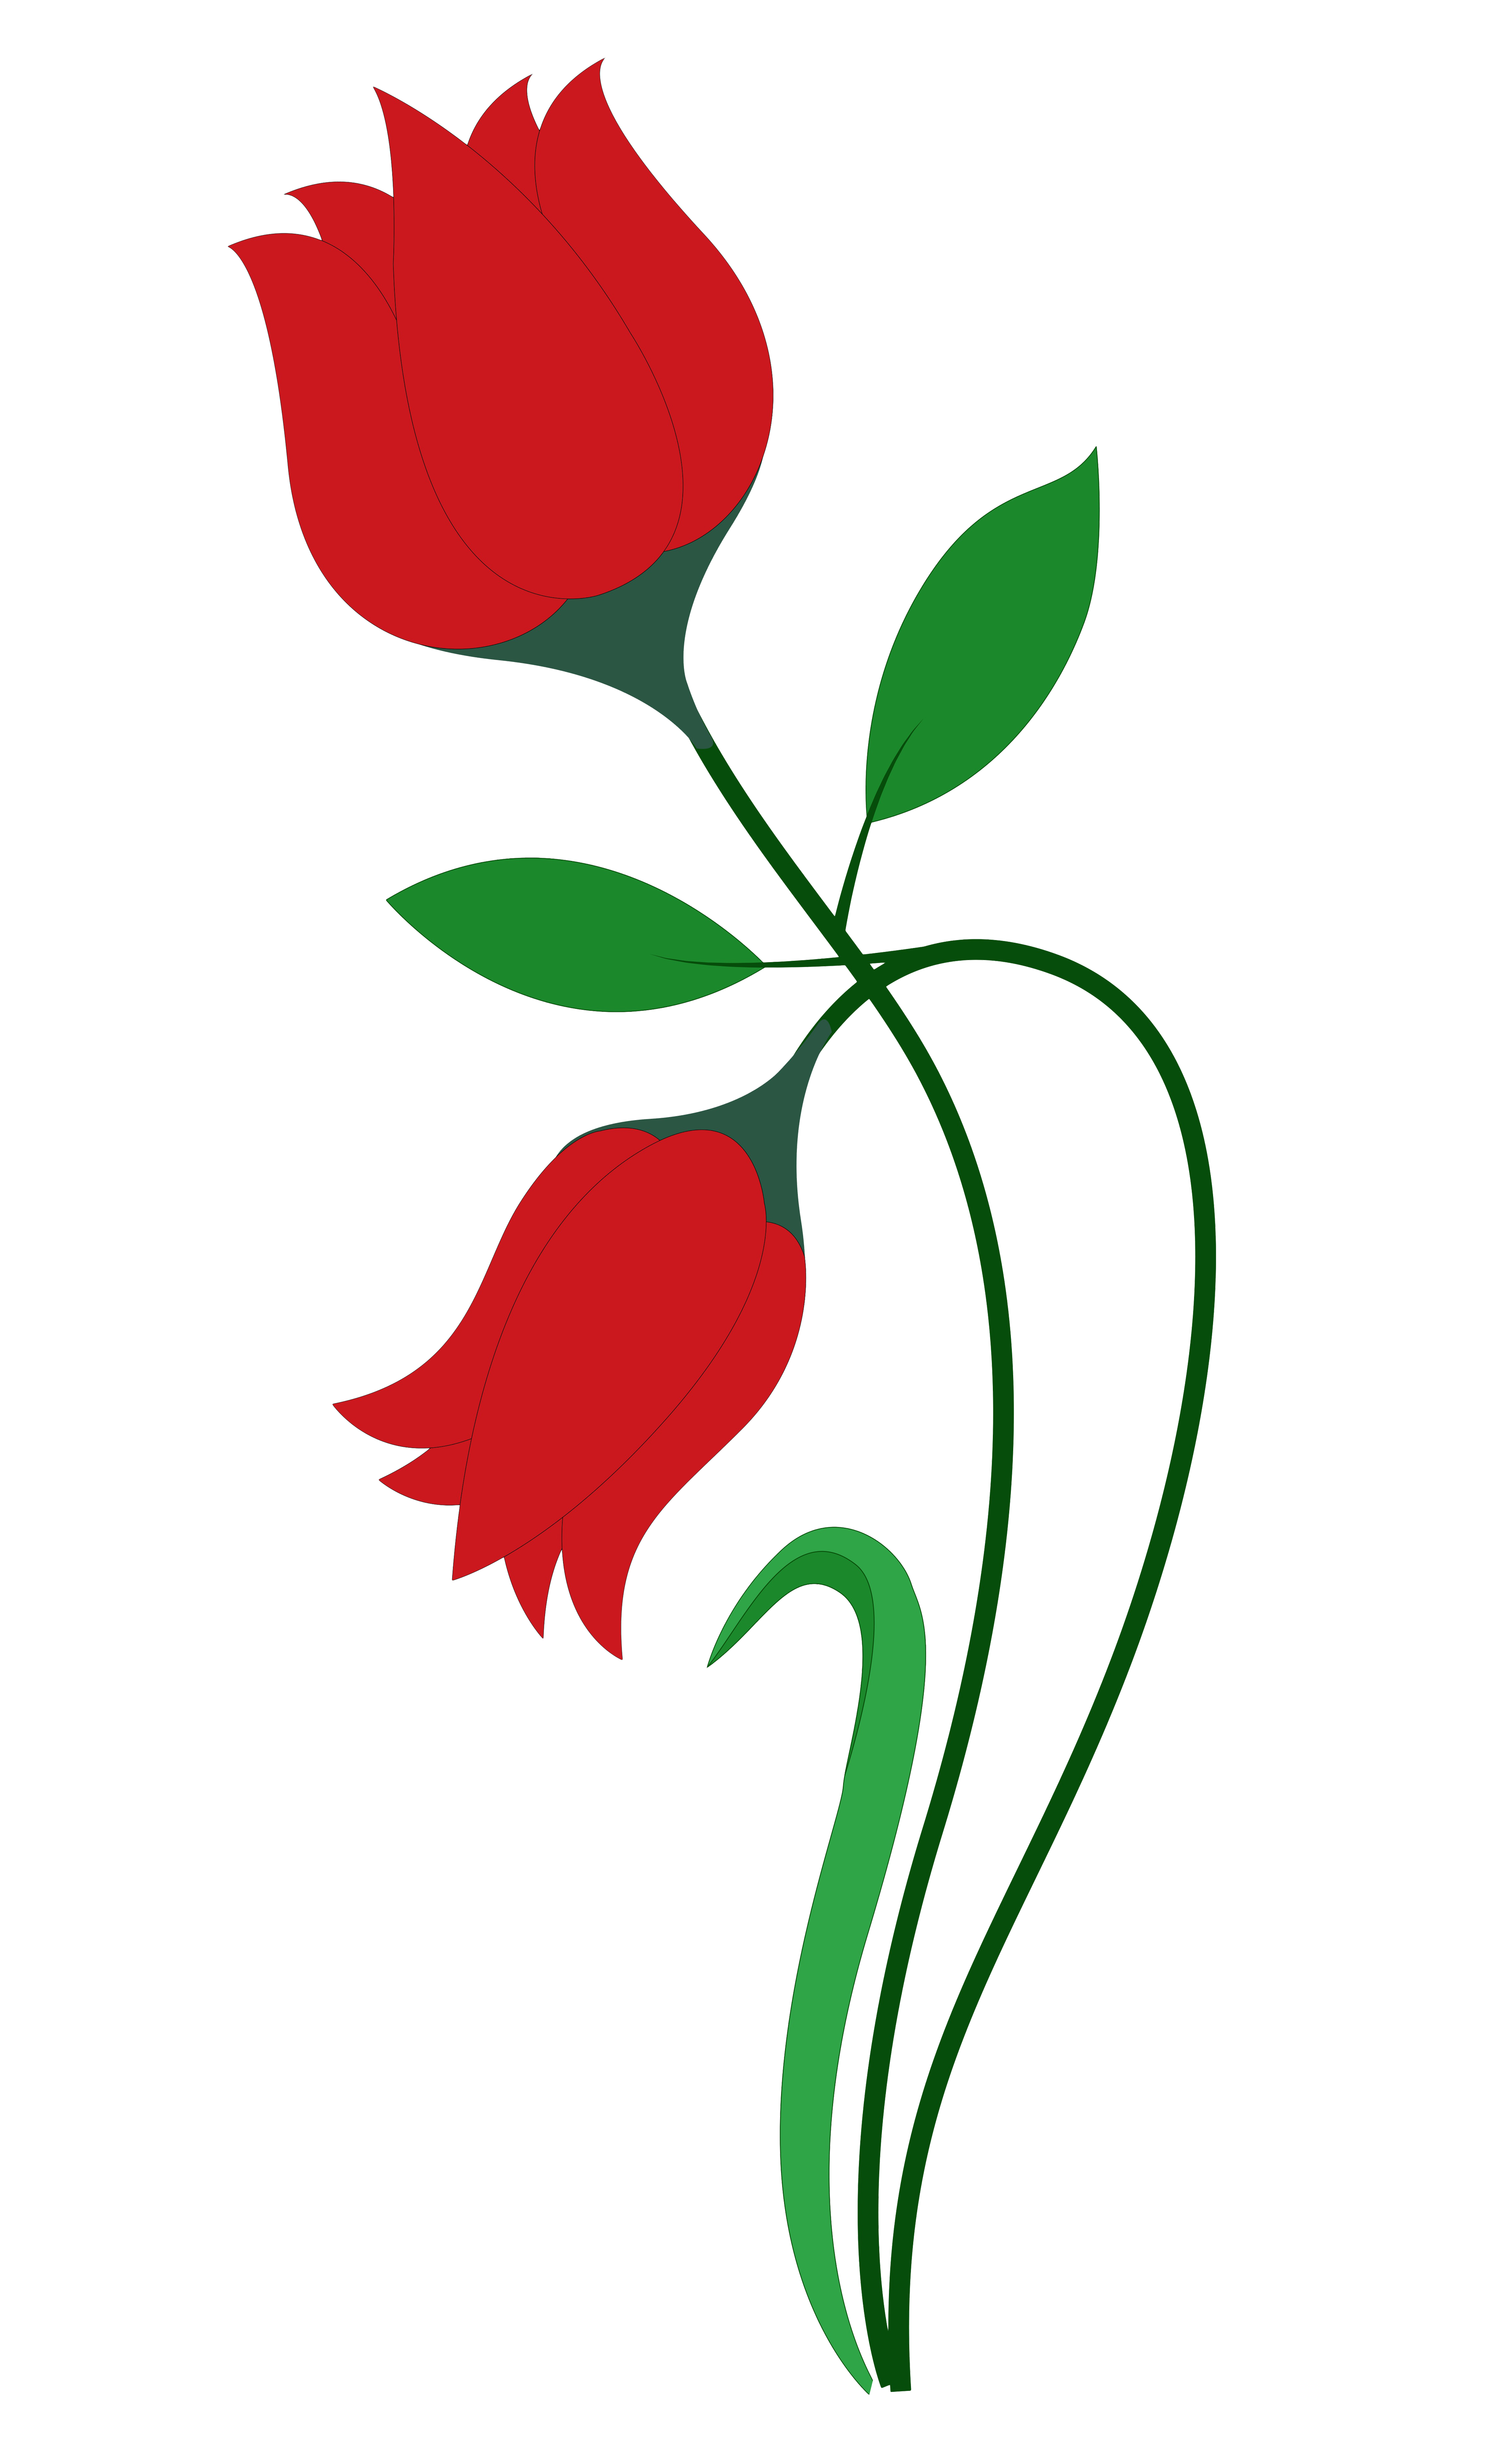 Pin By Charudeal On Outdoor In 2020 Rose Flower Png Flower Png Images Red Rose Flower